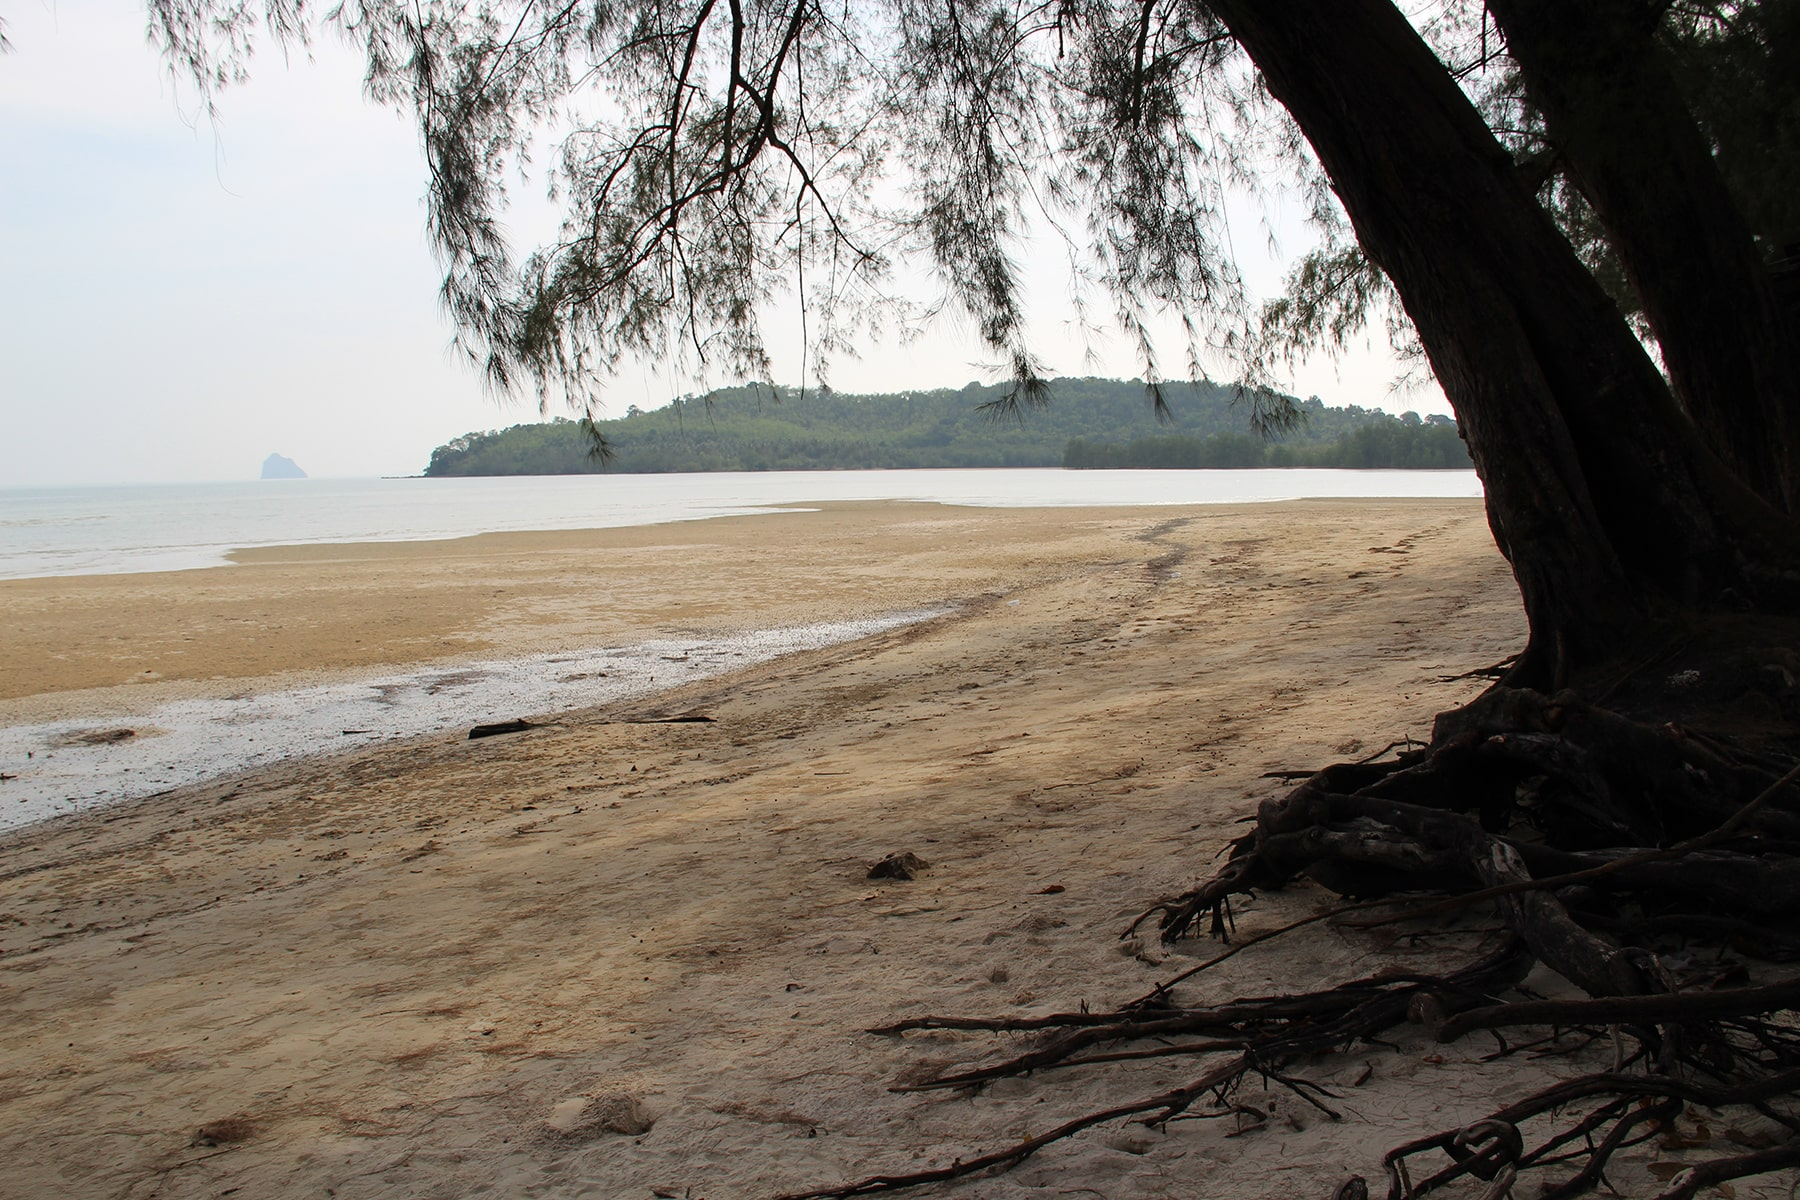 Tree on Khlong Son Beach in Koh Yao Yai